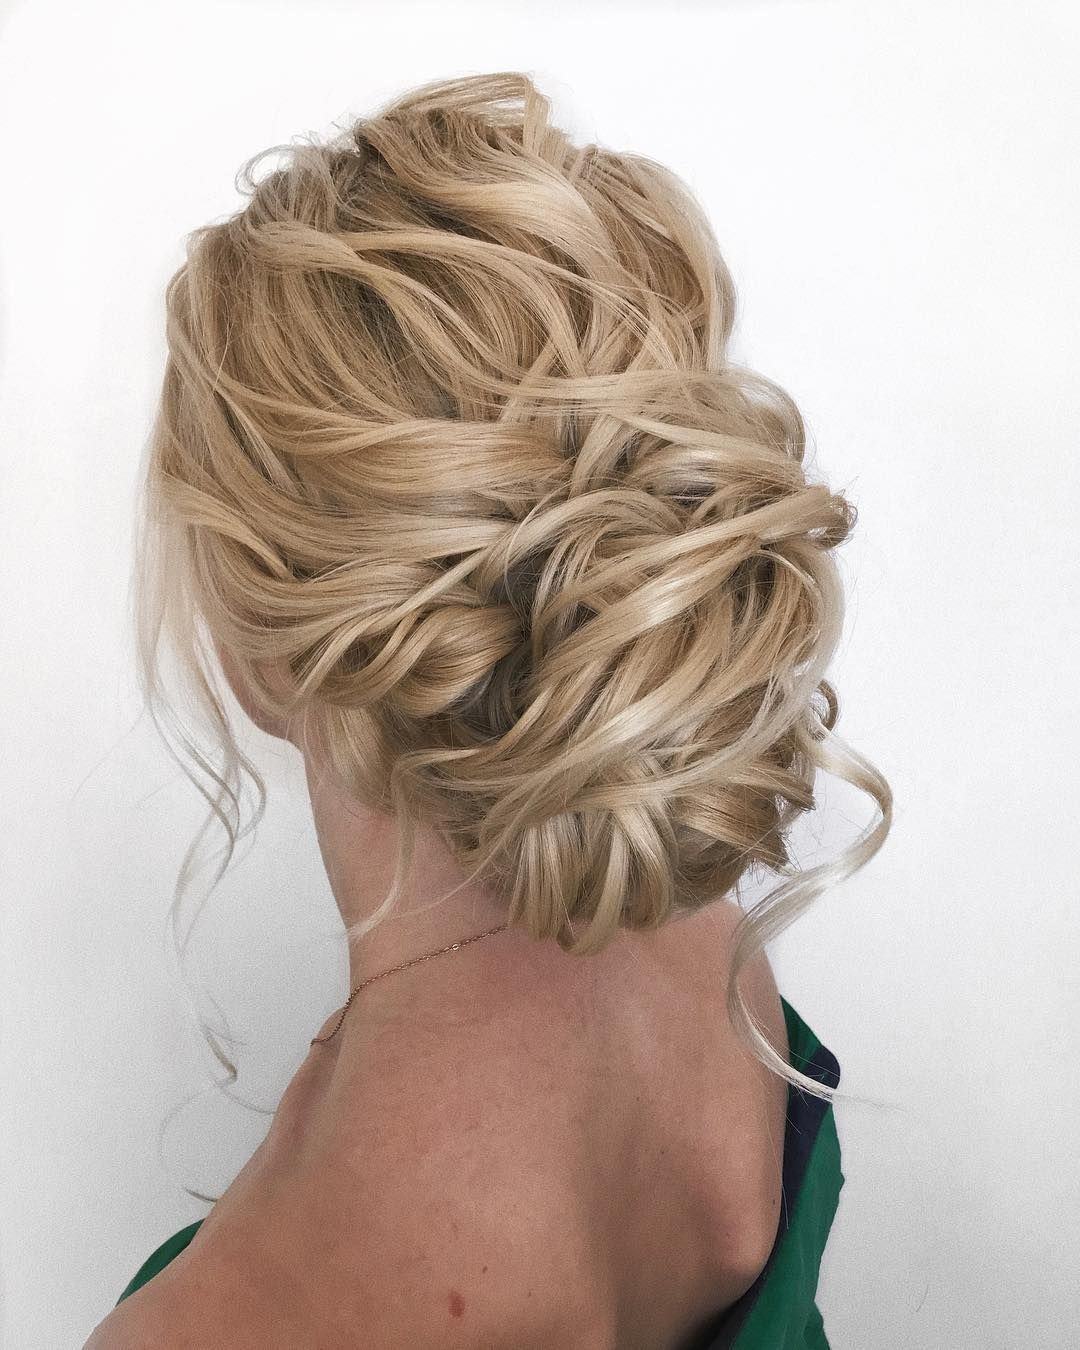 textured updo, updo wedding hairstyles,updo hairstyles,messy